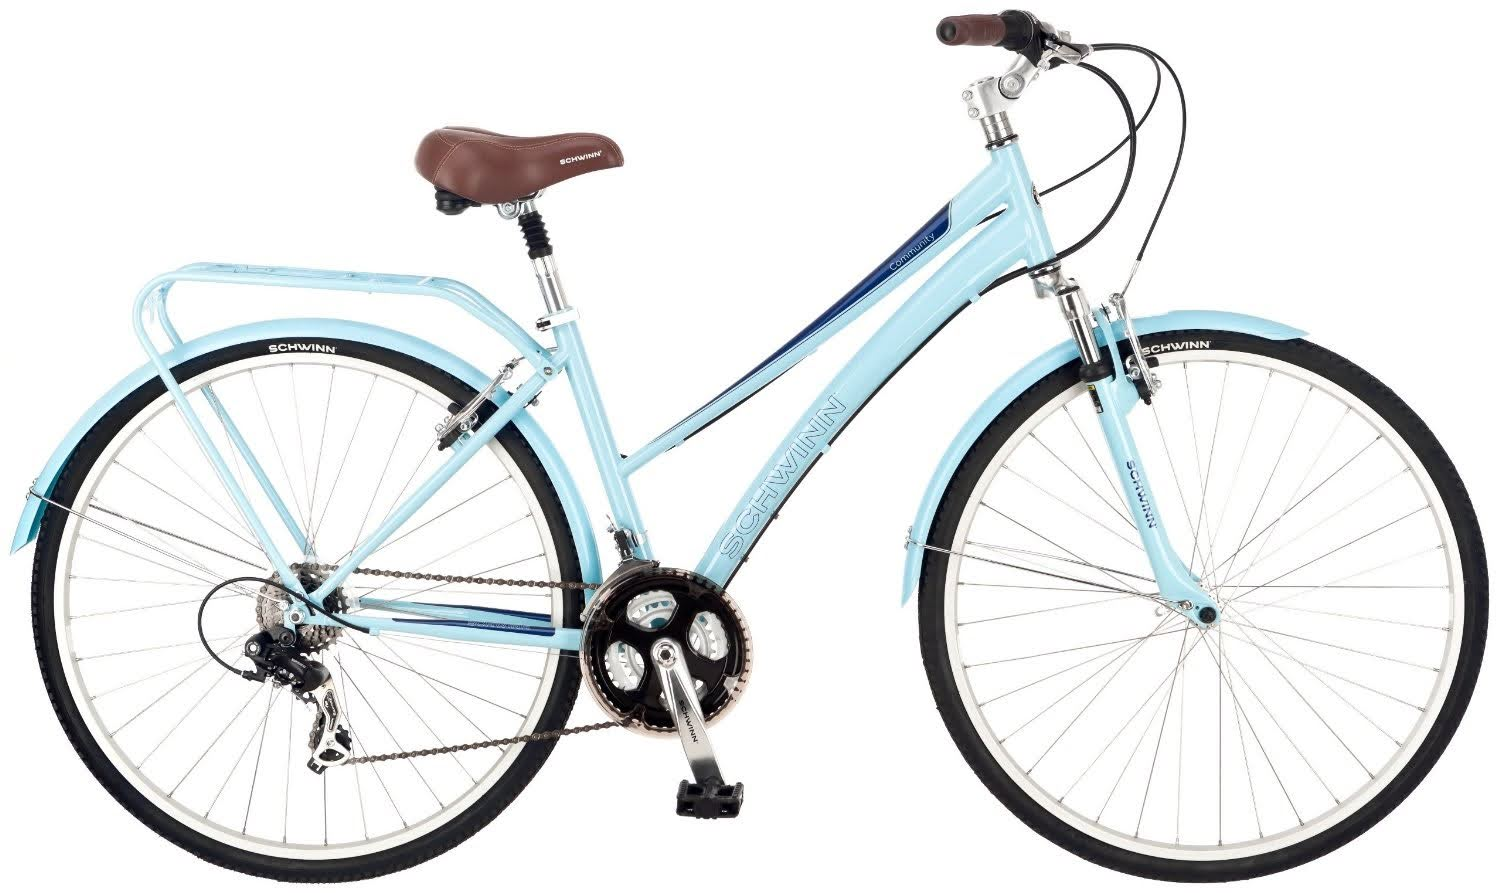 a83db1a8569 Schwinn Women's Community 700c Hybrid Bicycle, with Shimano 21-speed rear  derailleur & SRAM. >>